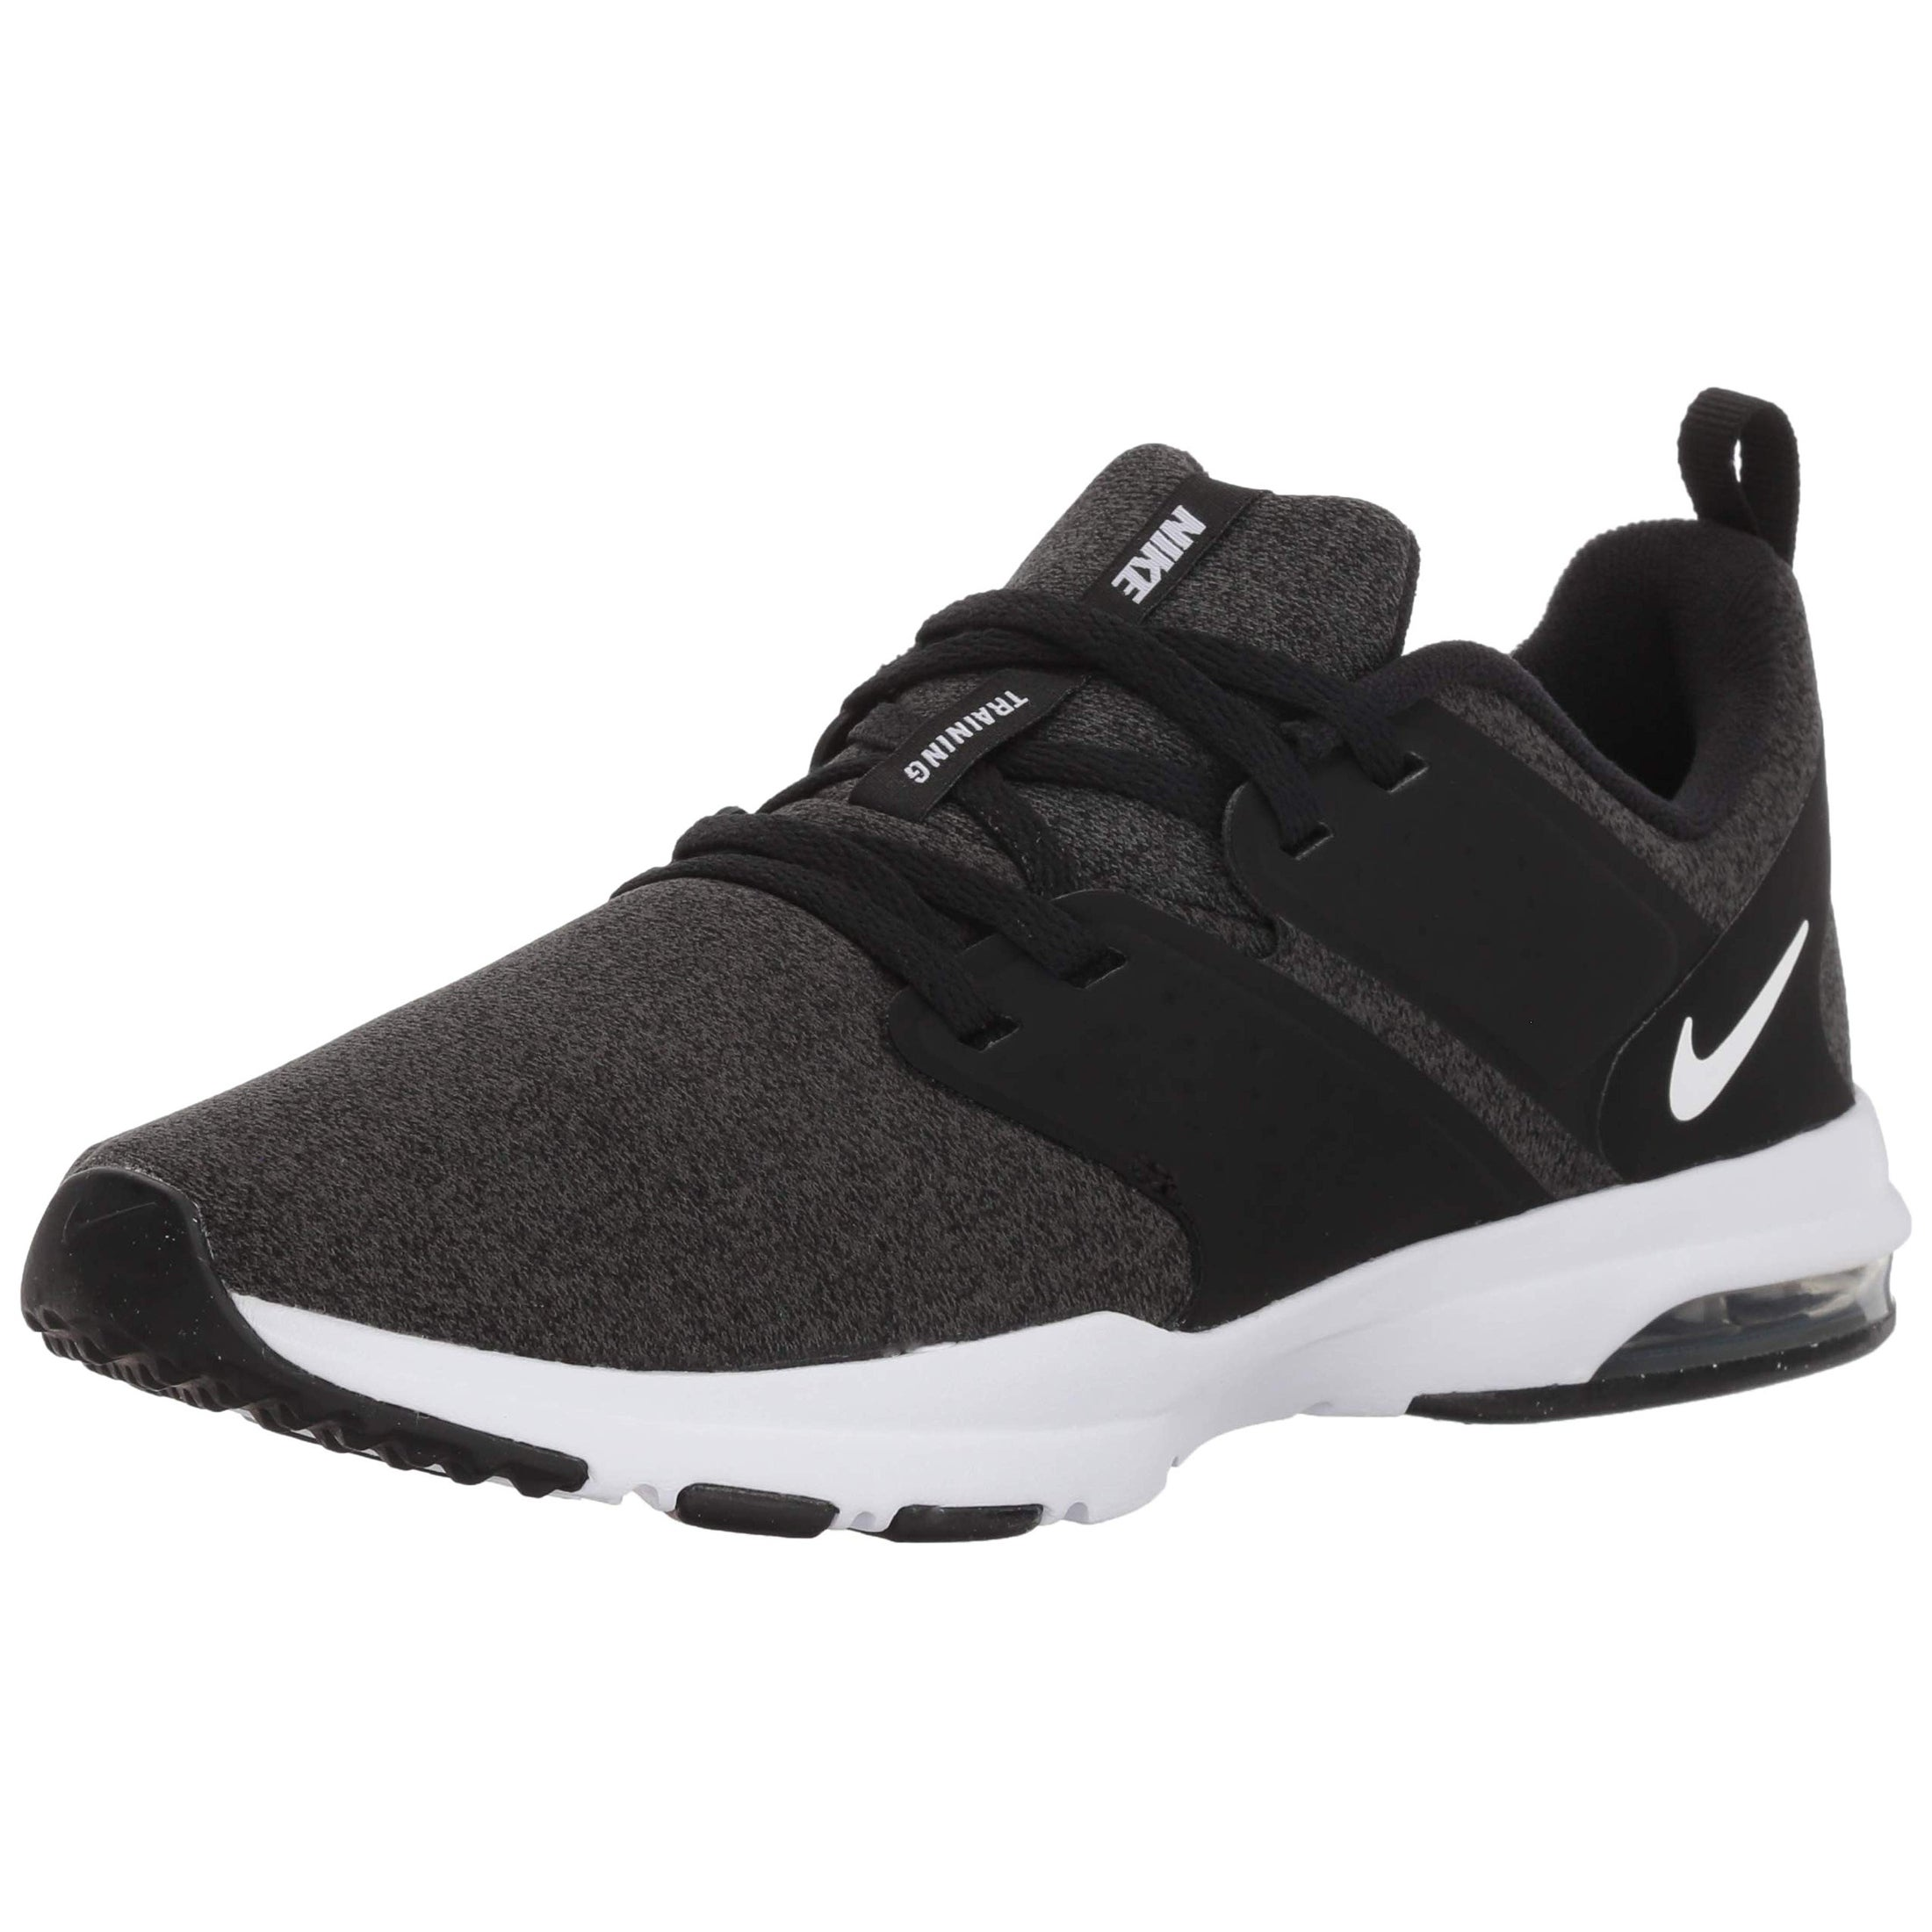 buy online 7df42 760c7 Multi Nike Shoes   Shop our Best Clothing   Shoes Deals Online at Overstock